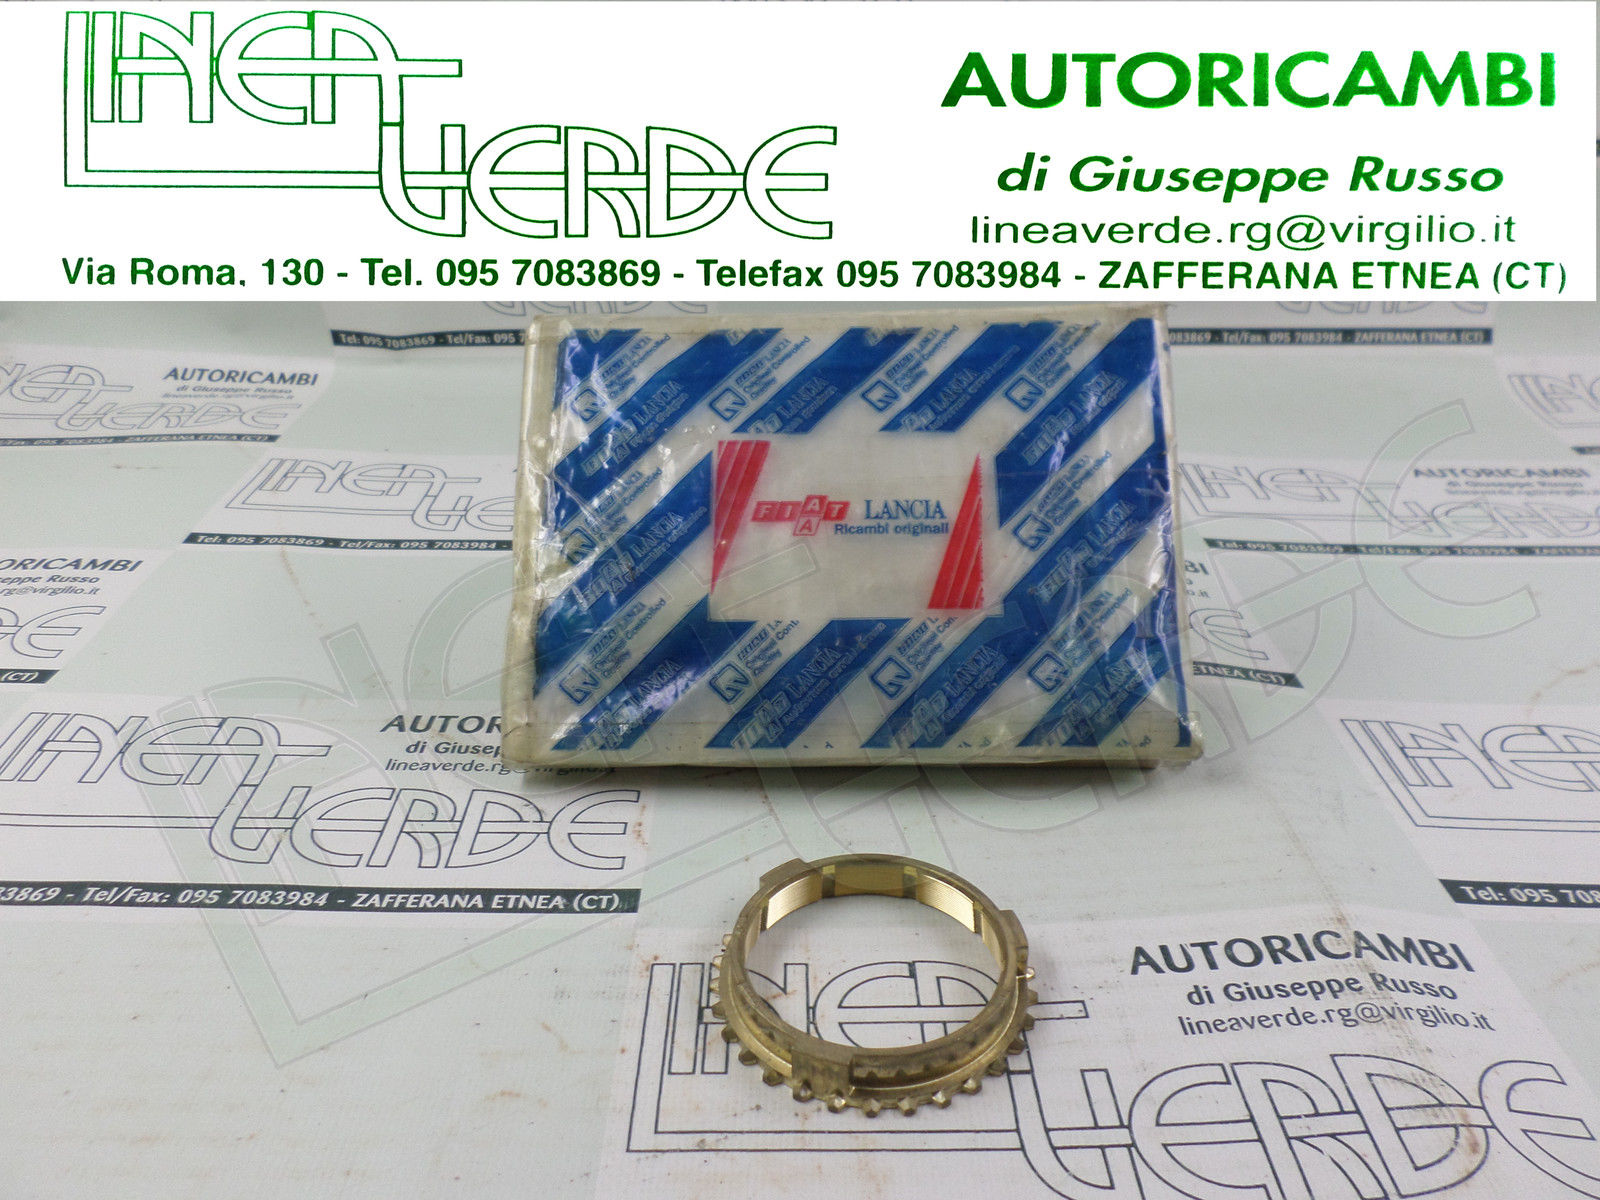 SYNCHRONIZER 1^ 2^ SPEED EXCHANGE 7617533 PRODUCT ORIGINAL FIAT PANDA UNO Y10